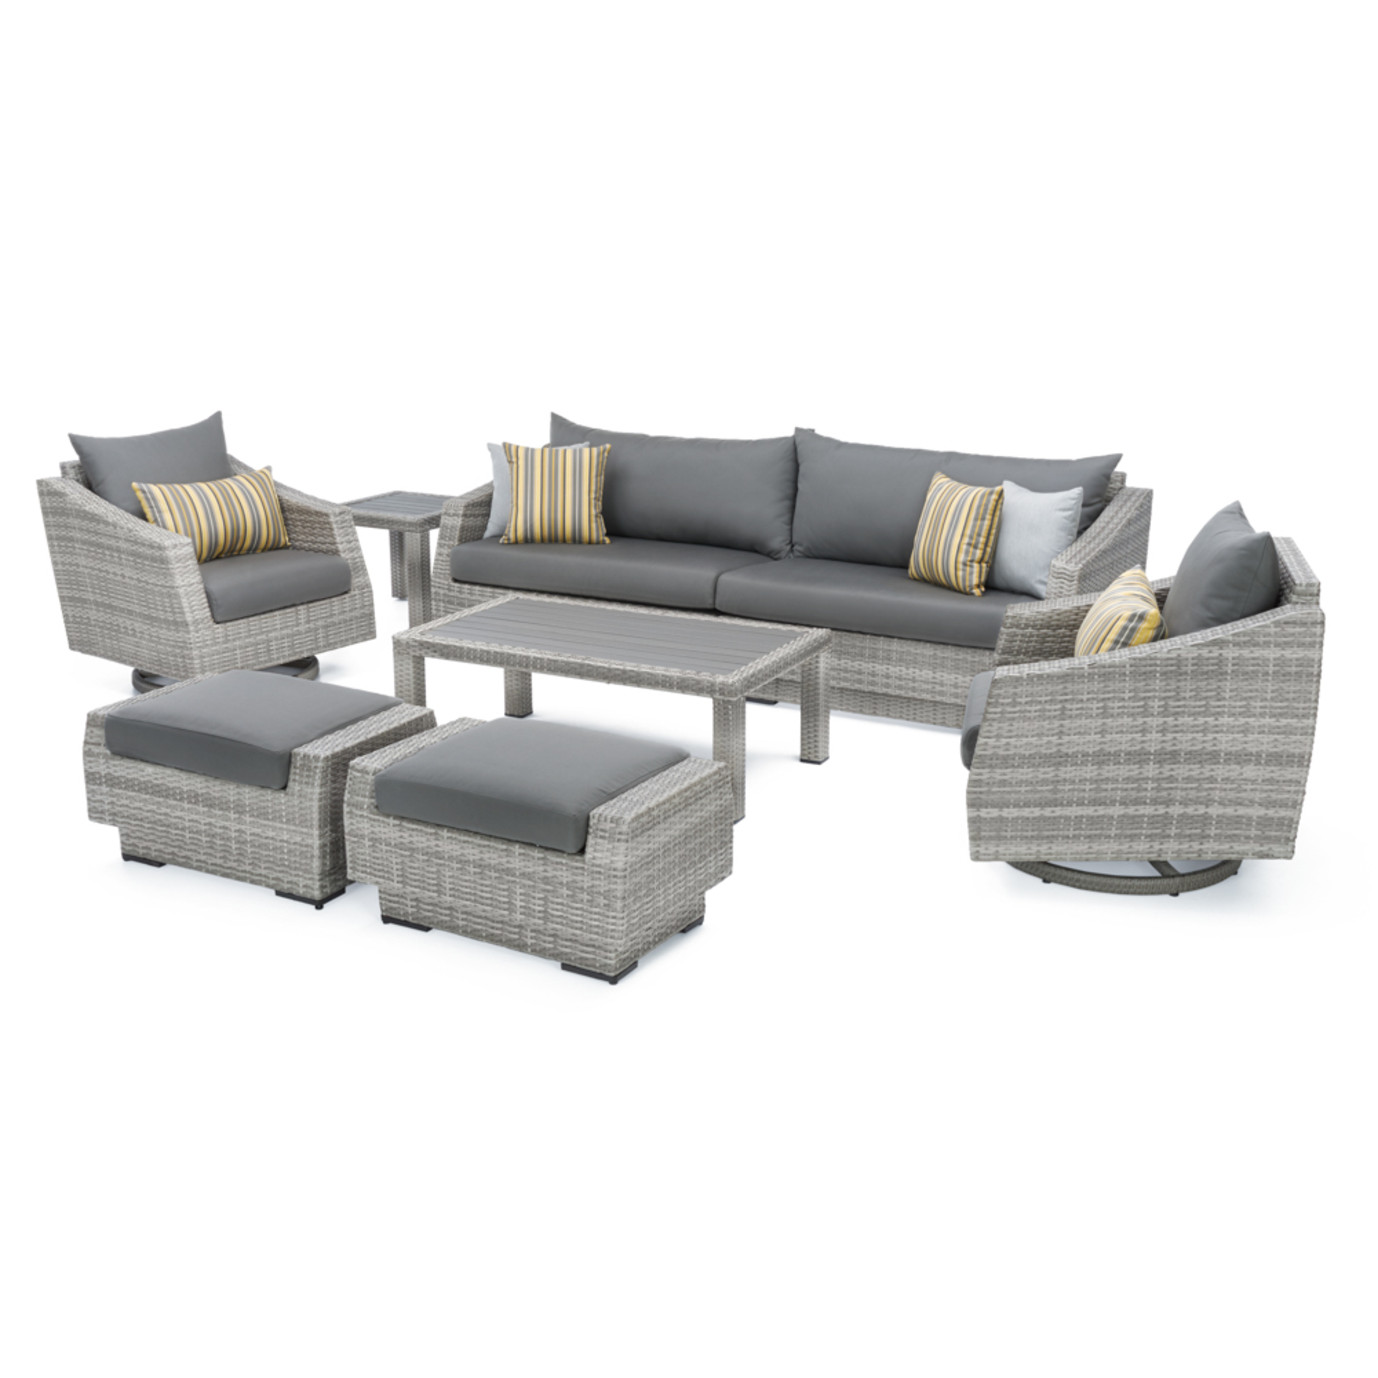 Cannes Deluxe 8pc Sofa Amp Club Chair Set Charcoal Grey